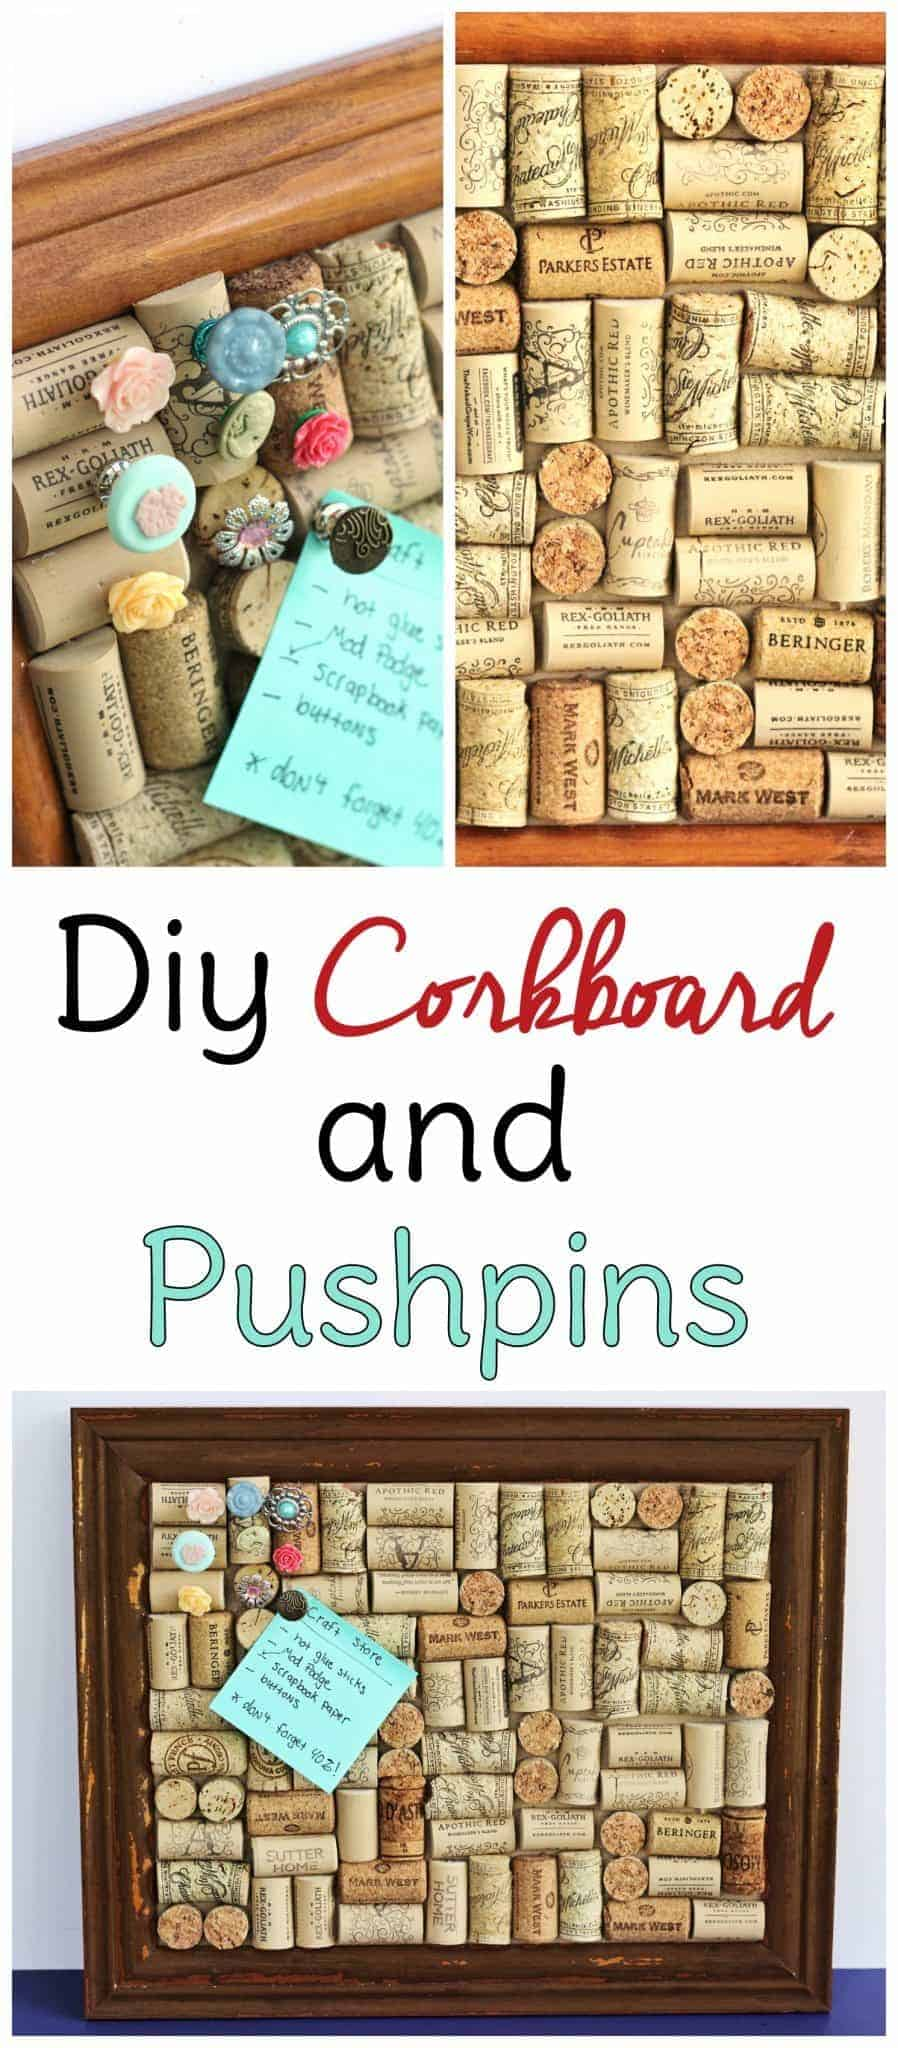 Used wine corks for crafts - Make Your Own Cork Board From Wine Corks